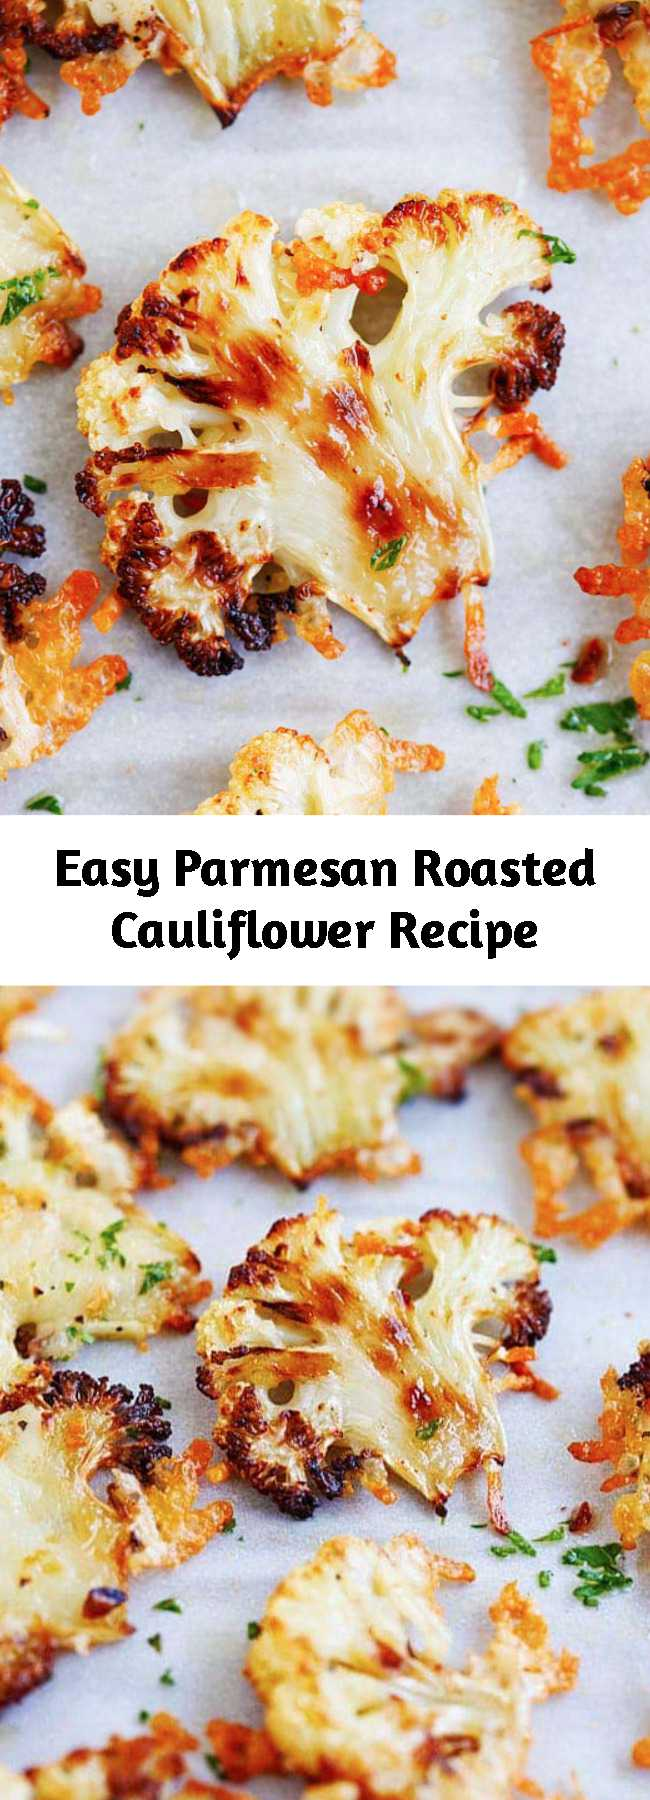 Easy Parmesan Roasted Cauliflower Recipe - Easy roasted cauliflower with Parmesan cheese is one of the best cauliflower recipes. Cauliflower is cheesy, buttery with simple ingredients. This recipe takes only 10 mins active time.